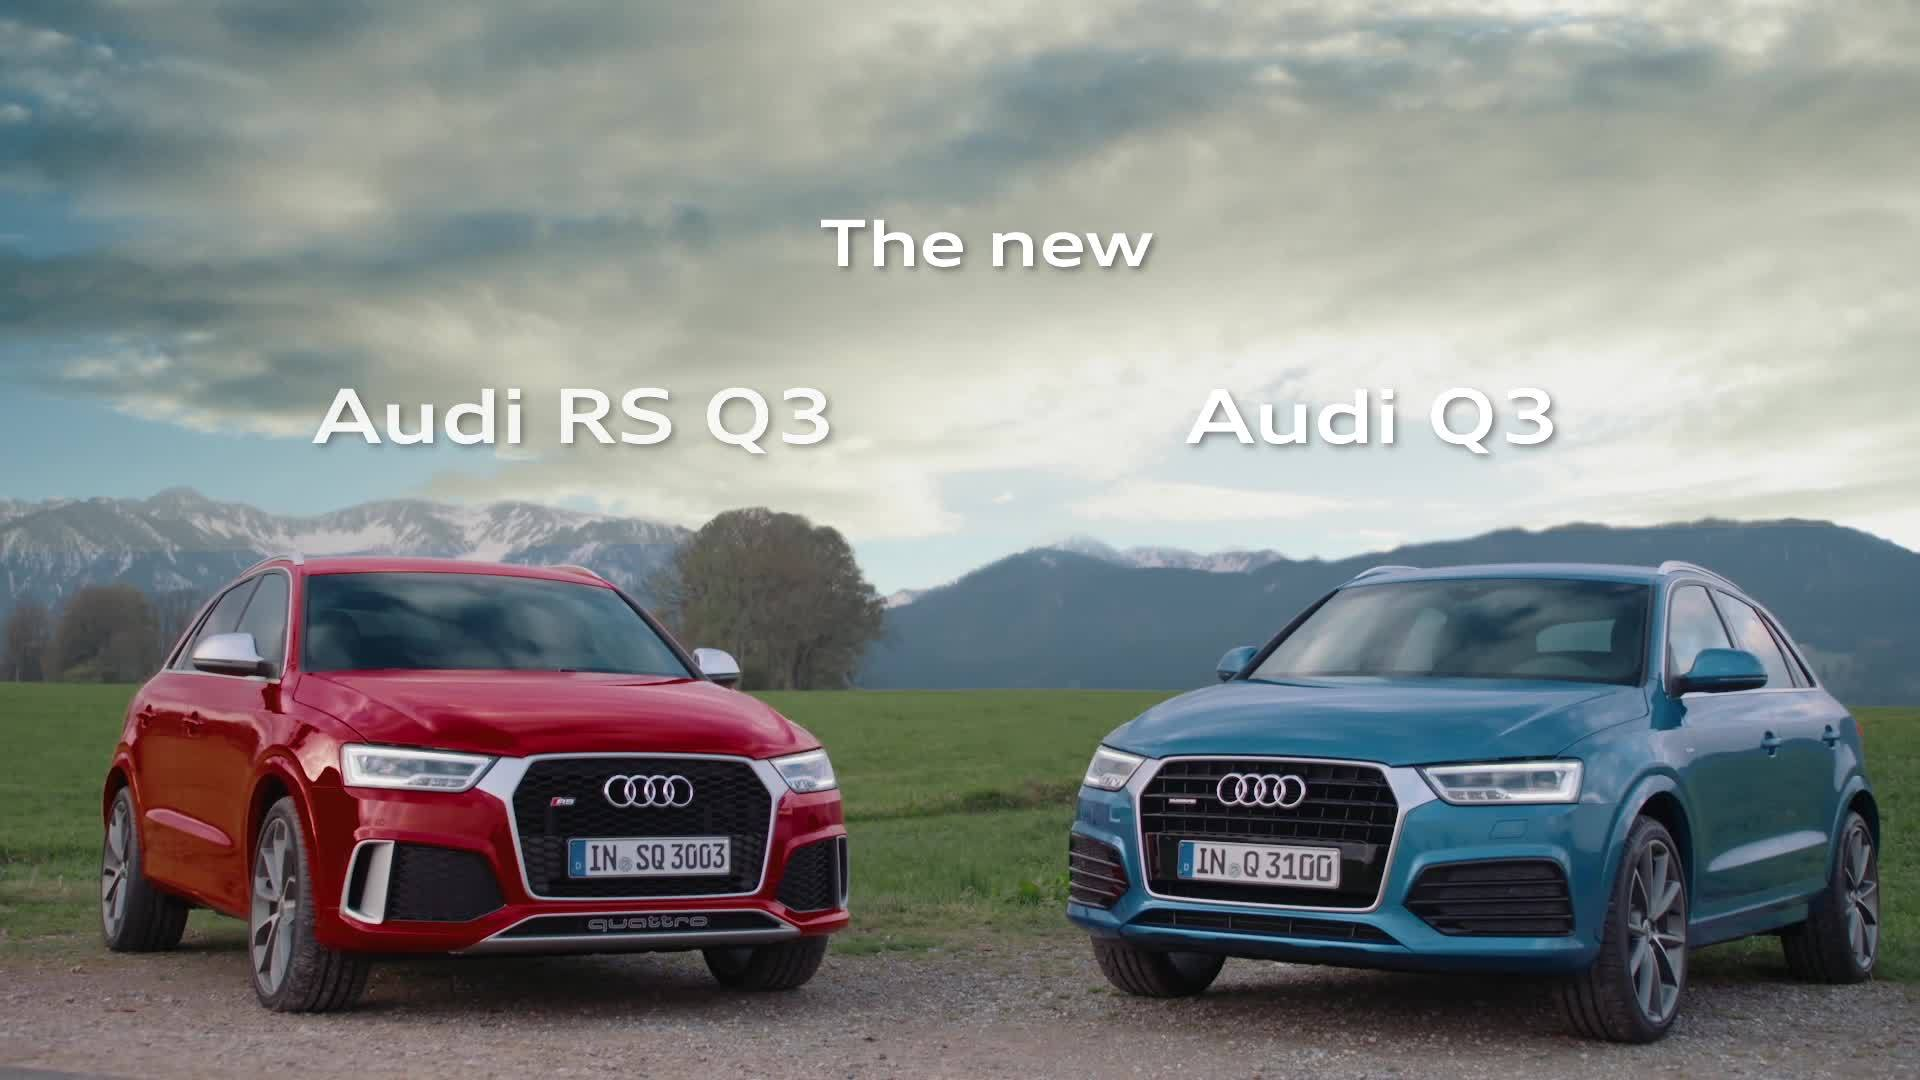 The new Audi Q3 and RS Q3 - Trailer